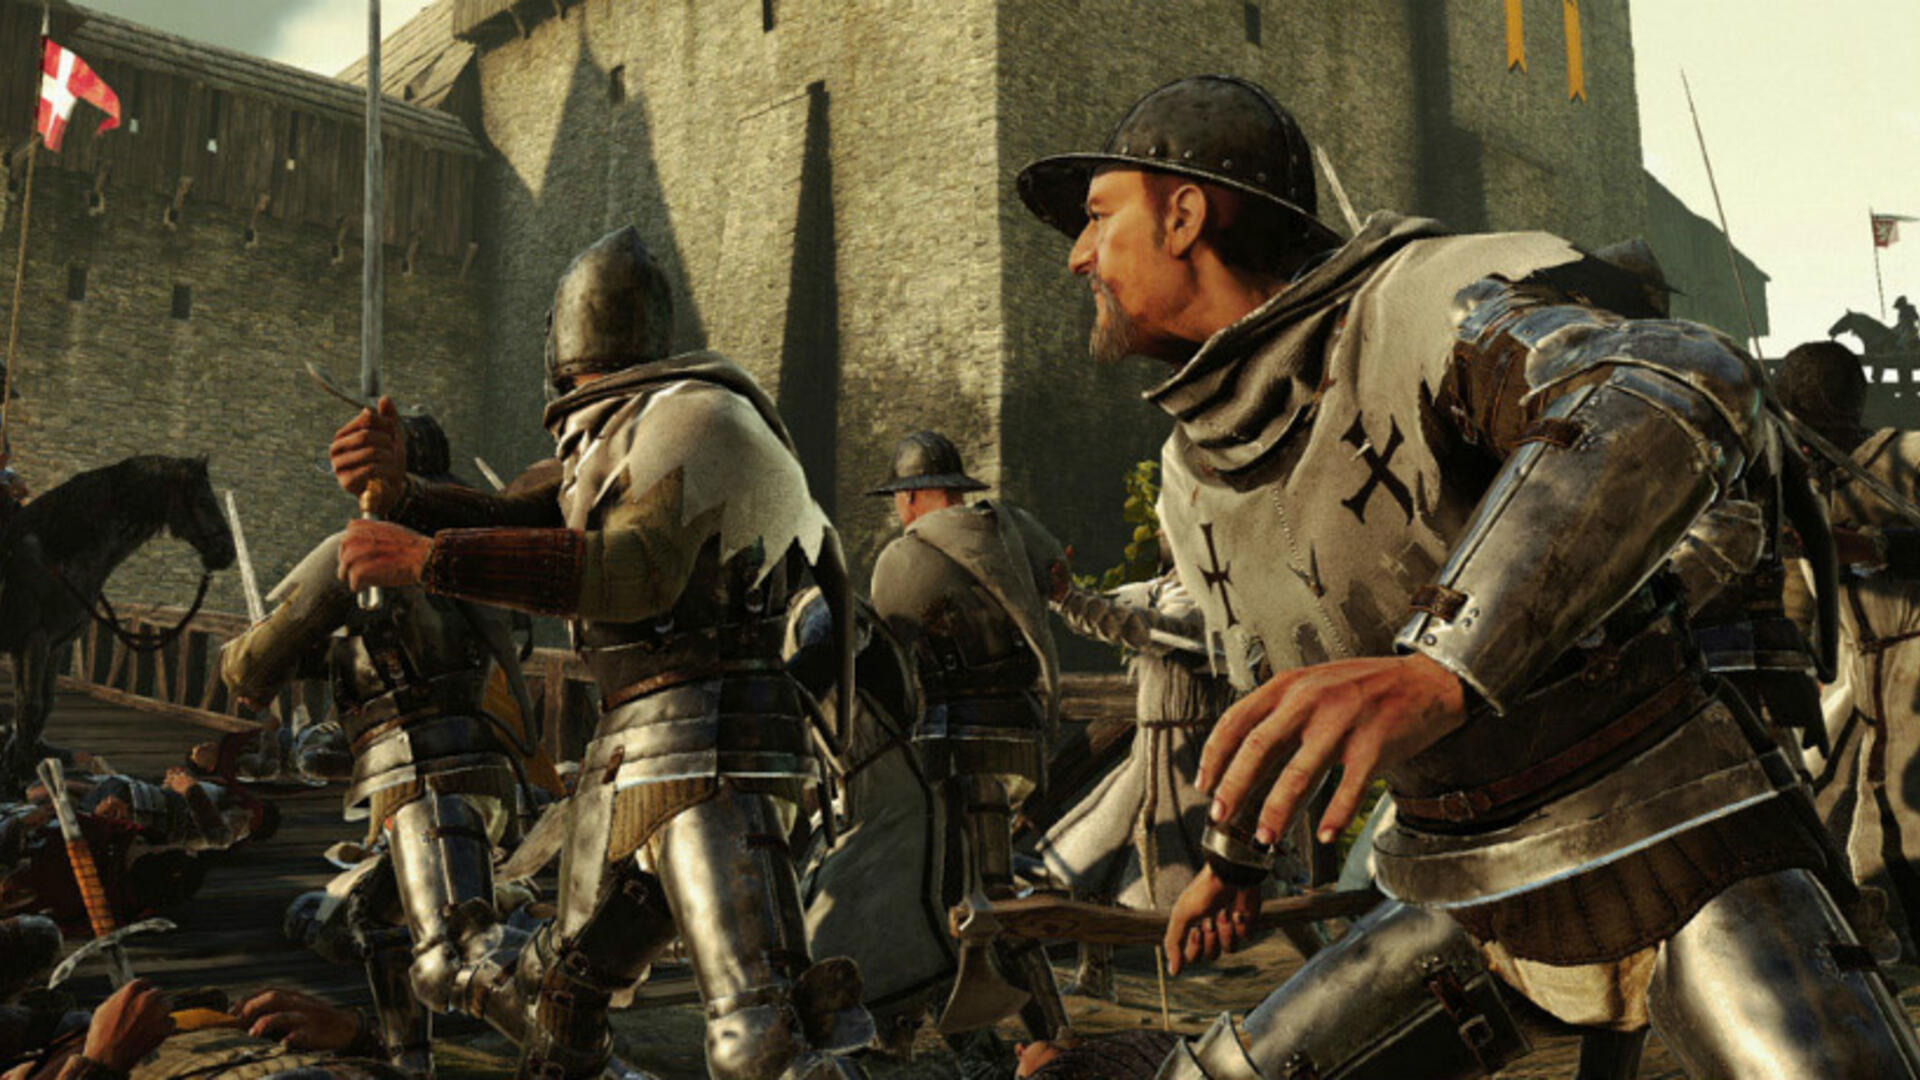 Kingdom Come: Deliverance Mod Fixes the Game's Troublesome Save System